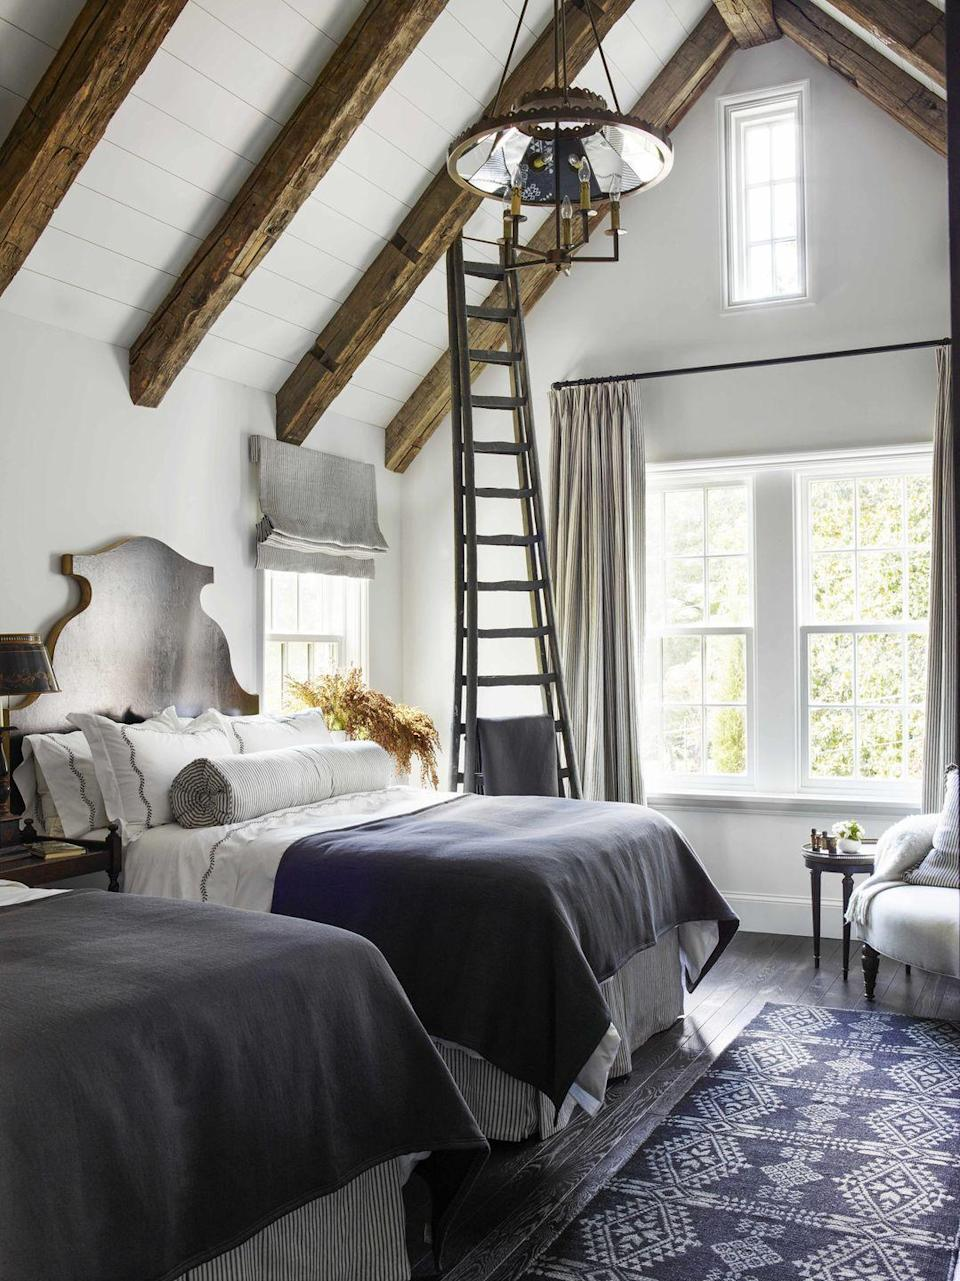 """<p>To honor the craftsmanship and original architecture of this <a href=""""https://www.veranda.com/decorating-ideas/a28577679/amy-morris-atlanta-house-tour/"""" rel=""""nofollow noopener"""" target=""""_blank"""" data-ylk=""""slk:100-year-old home in Atlanta"""" class=""""link rapid-noclick-resp"""">100-year-old home in Atlanta</a>, designer <a href=""""https://amymorrisinteriors.com/"""" rel=""""nofollow noopener"""" target=""""_blank"""" data-ylk=""""slk:Amy Morris"""" class=""""link rapid-noclick-resp"""">Amy Morris</a> kept the color palette simple. Creamy white walls and deep textiles such as the <a href=""""https://moattar.com/"""" rel=""""nofollow noopener"""" target=""""_blank"""" data-ylk=""""slk:Moattar"""" class=""""link rapid-noclick-resp"""">Moattar</a> rug allow the warm, rich ceiling beams and sculptural headboard (<a href=""""https://www.hollandmacrae.com/"""" rel=""""nofollow noopener"""" target=""""_blank"""" data-ylk=""""slk:Holland MacRae"""" class=""""link rapid-noclick-resp"""">Holland MacRae</a>) shine in this guest room. </p>"""